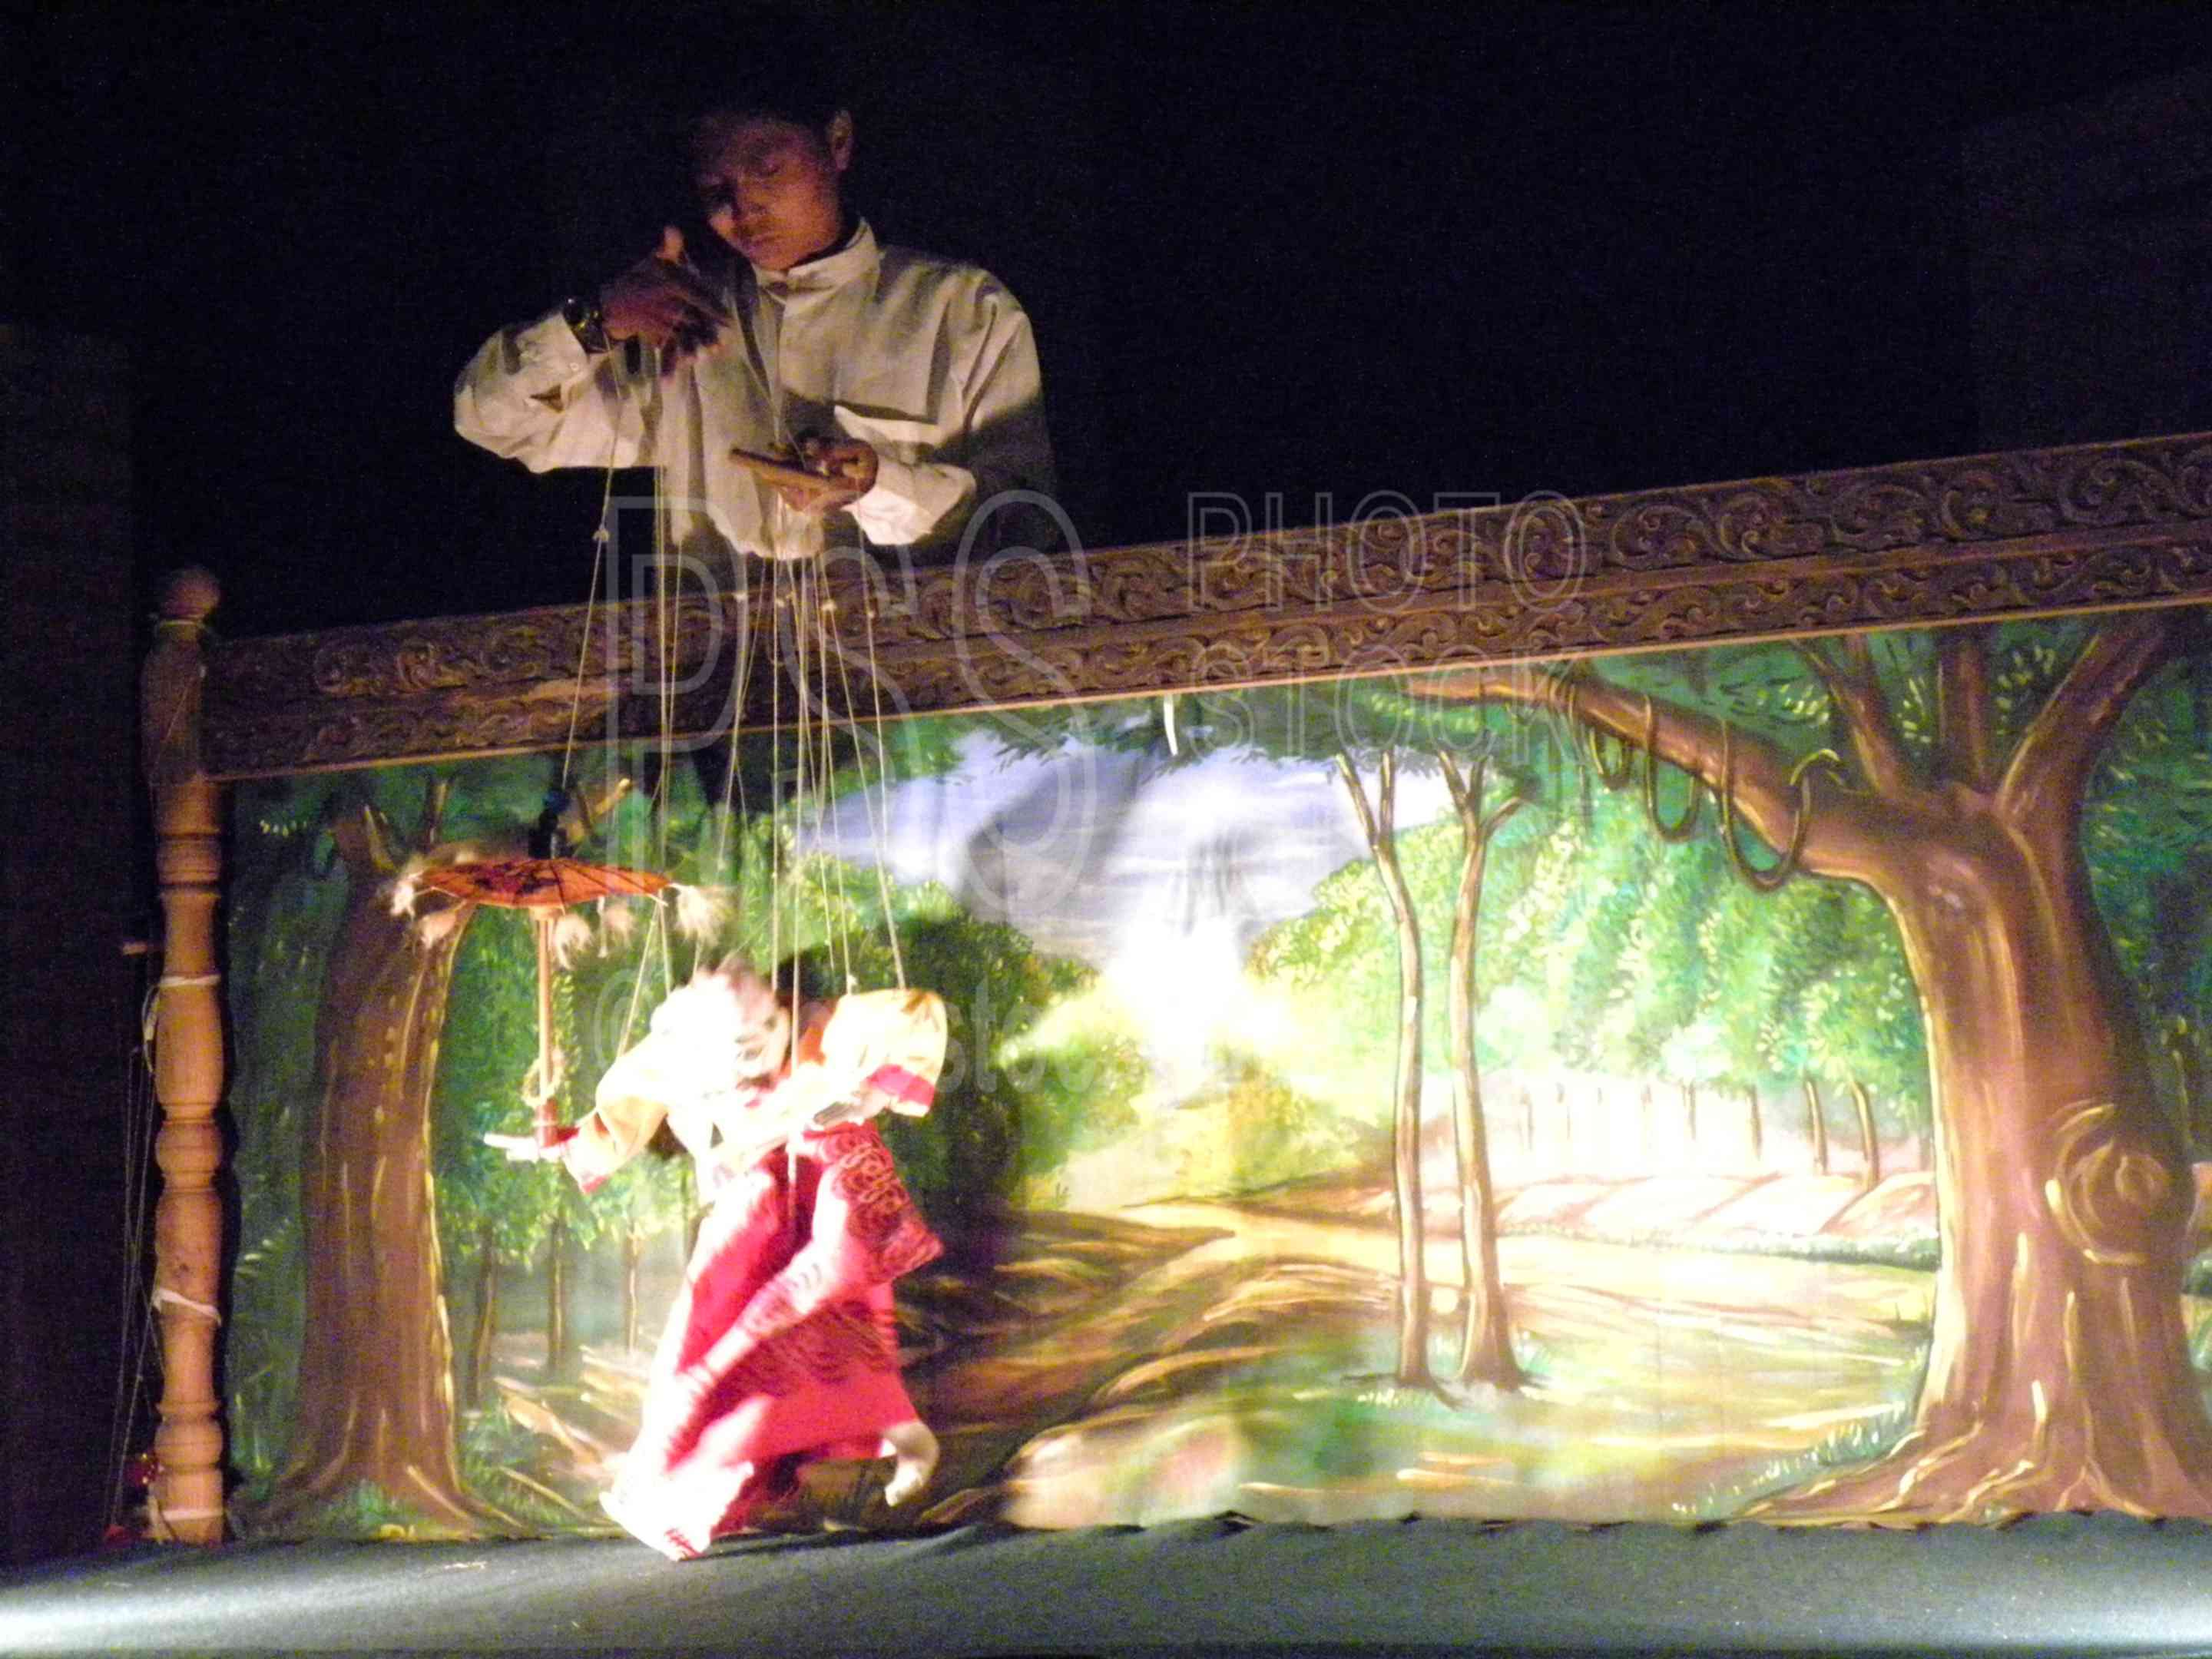 Burmese Puppet Show,myanmar,man,puppets,marionette,string,show,production,performance,puppet show,pagan